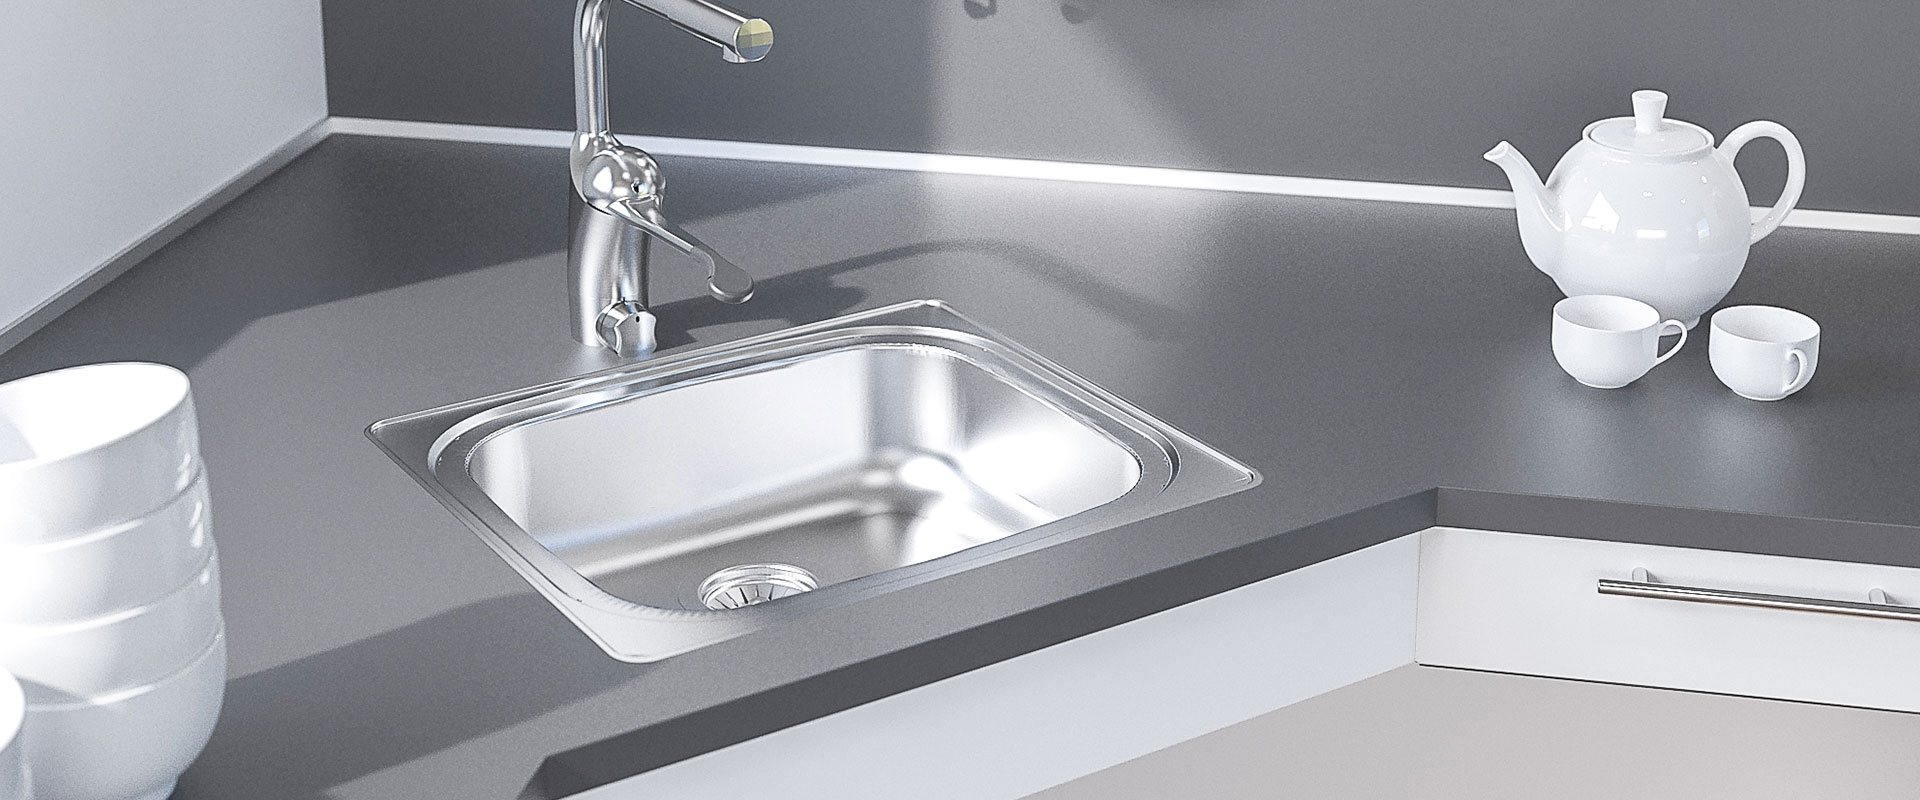 Inset Kitchen Sink ES10 - 44.1 cm